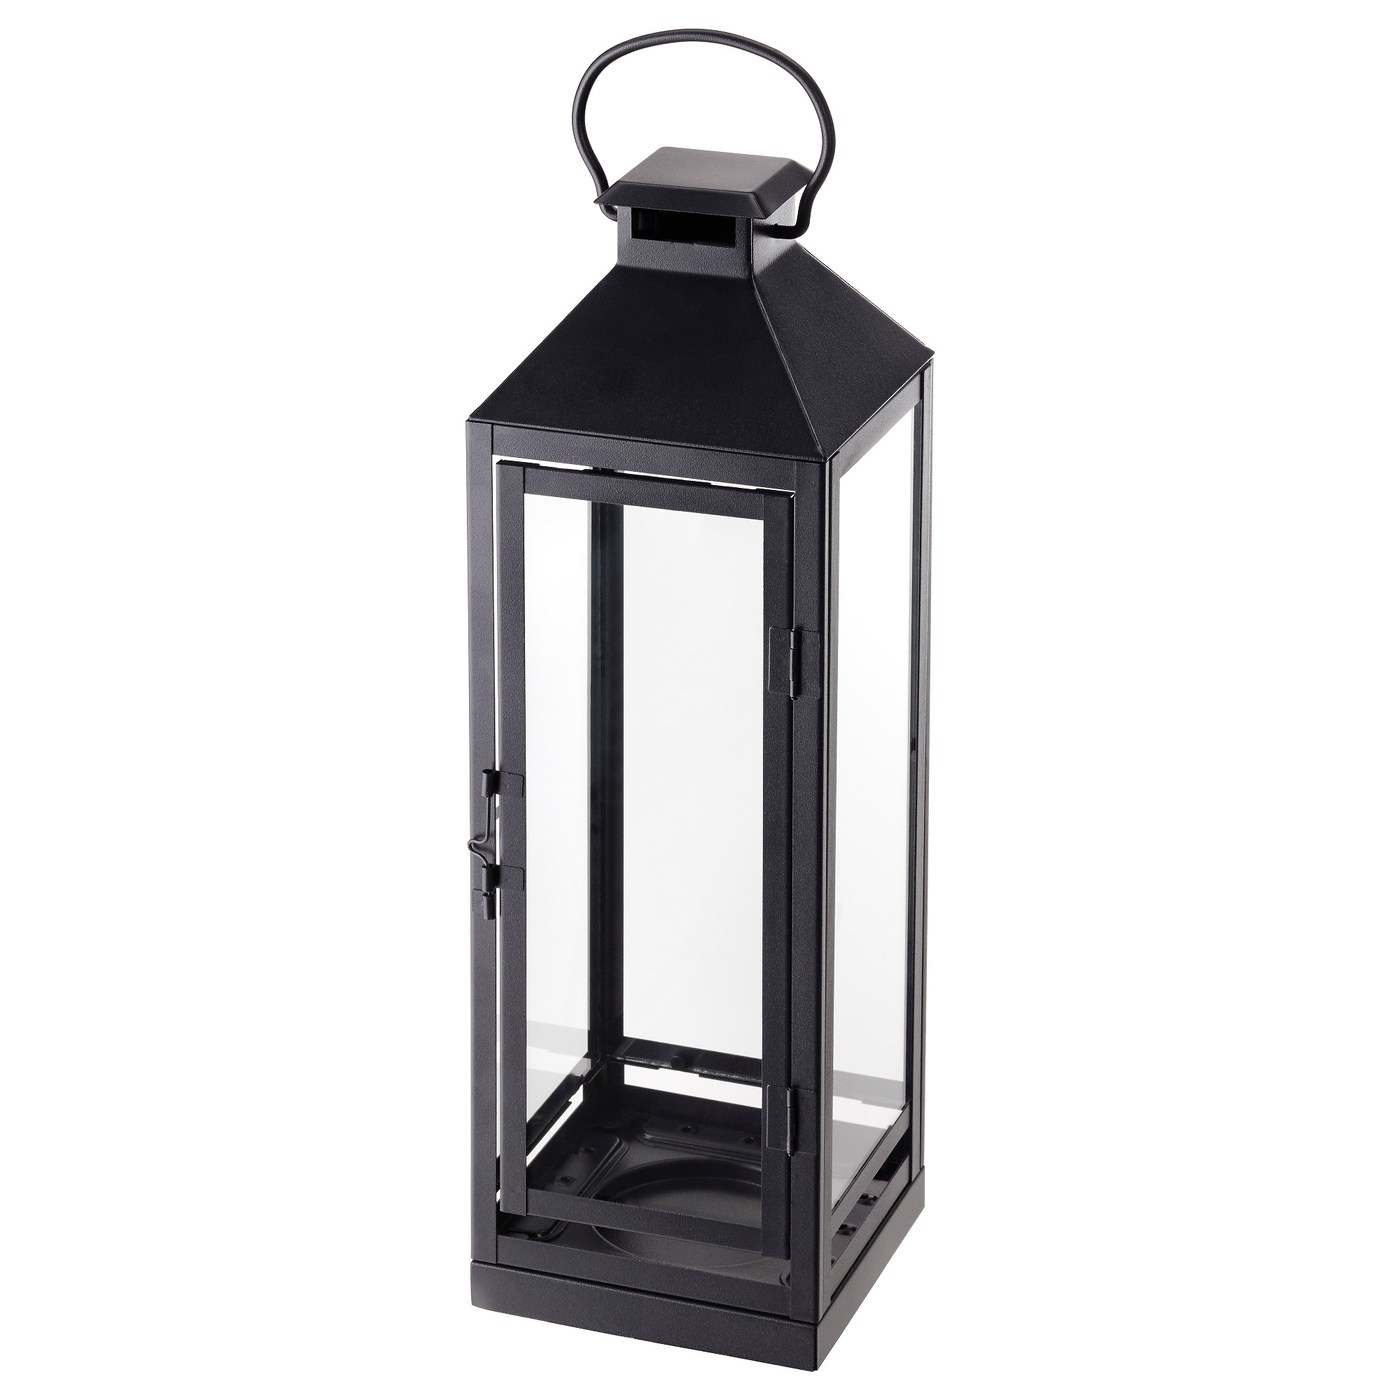 Lagrad - Ikea intended for Vaughan Outdoor Lanterns (Image 11 of 20)